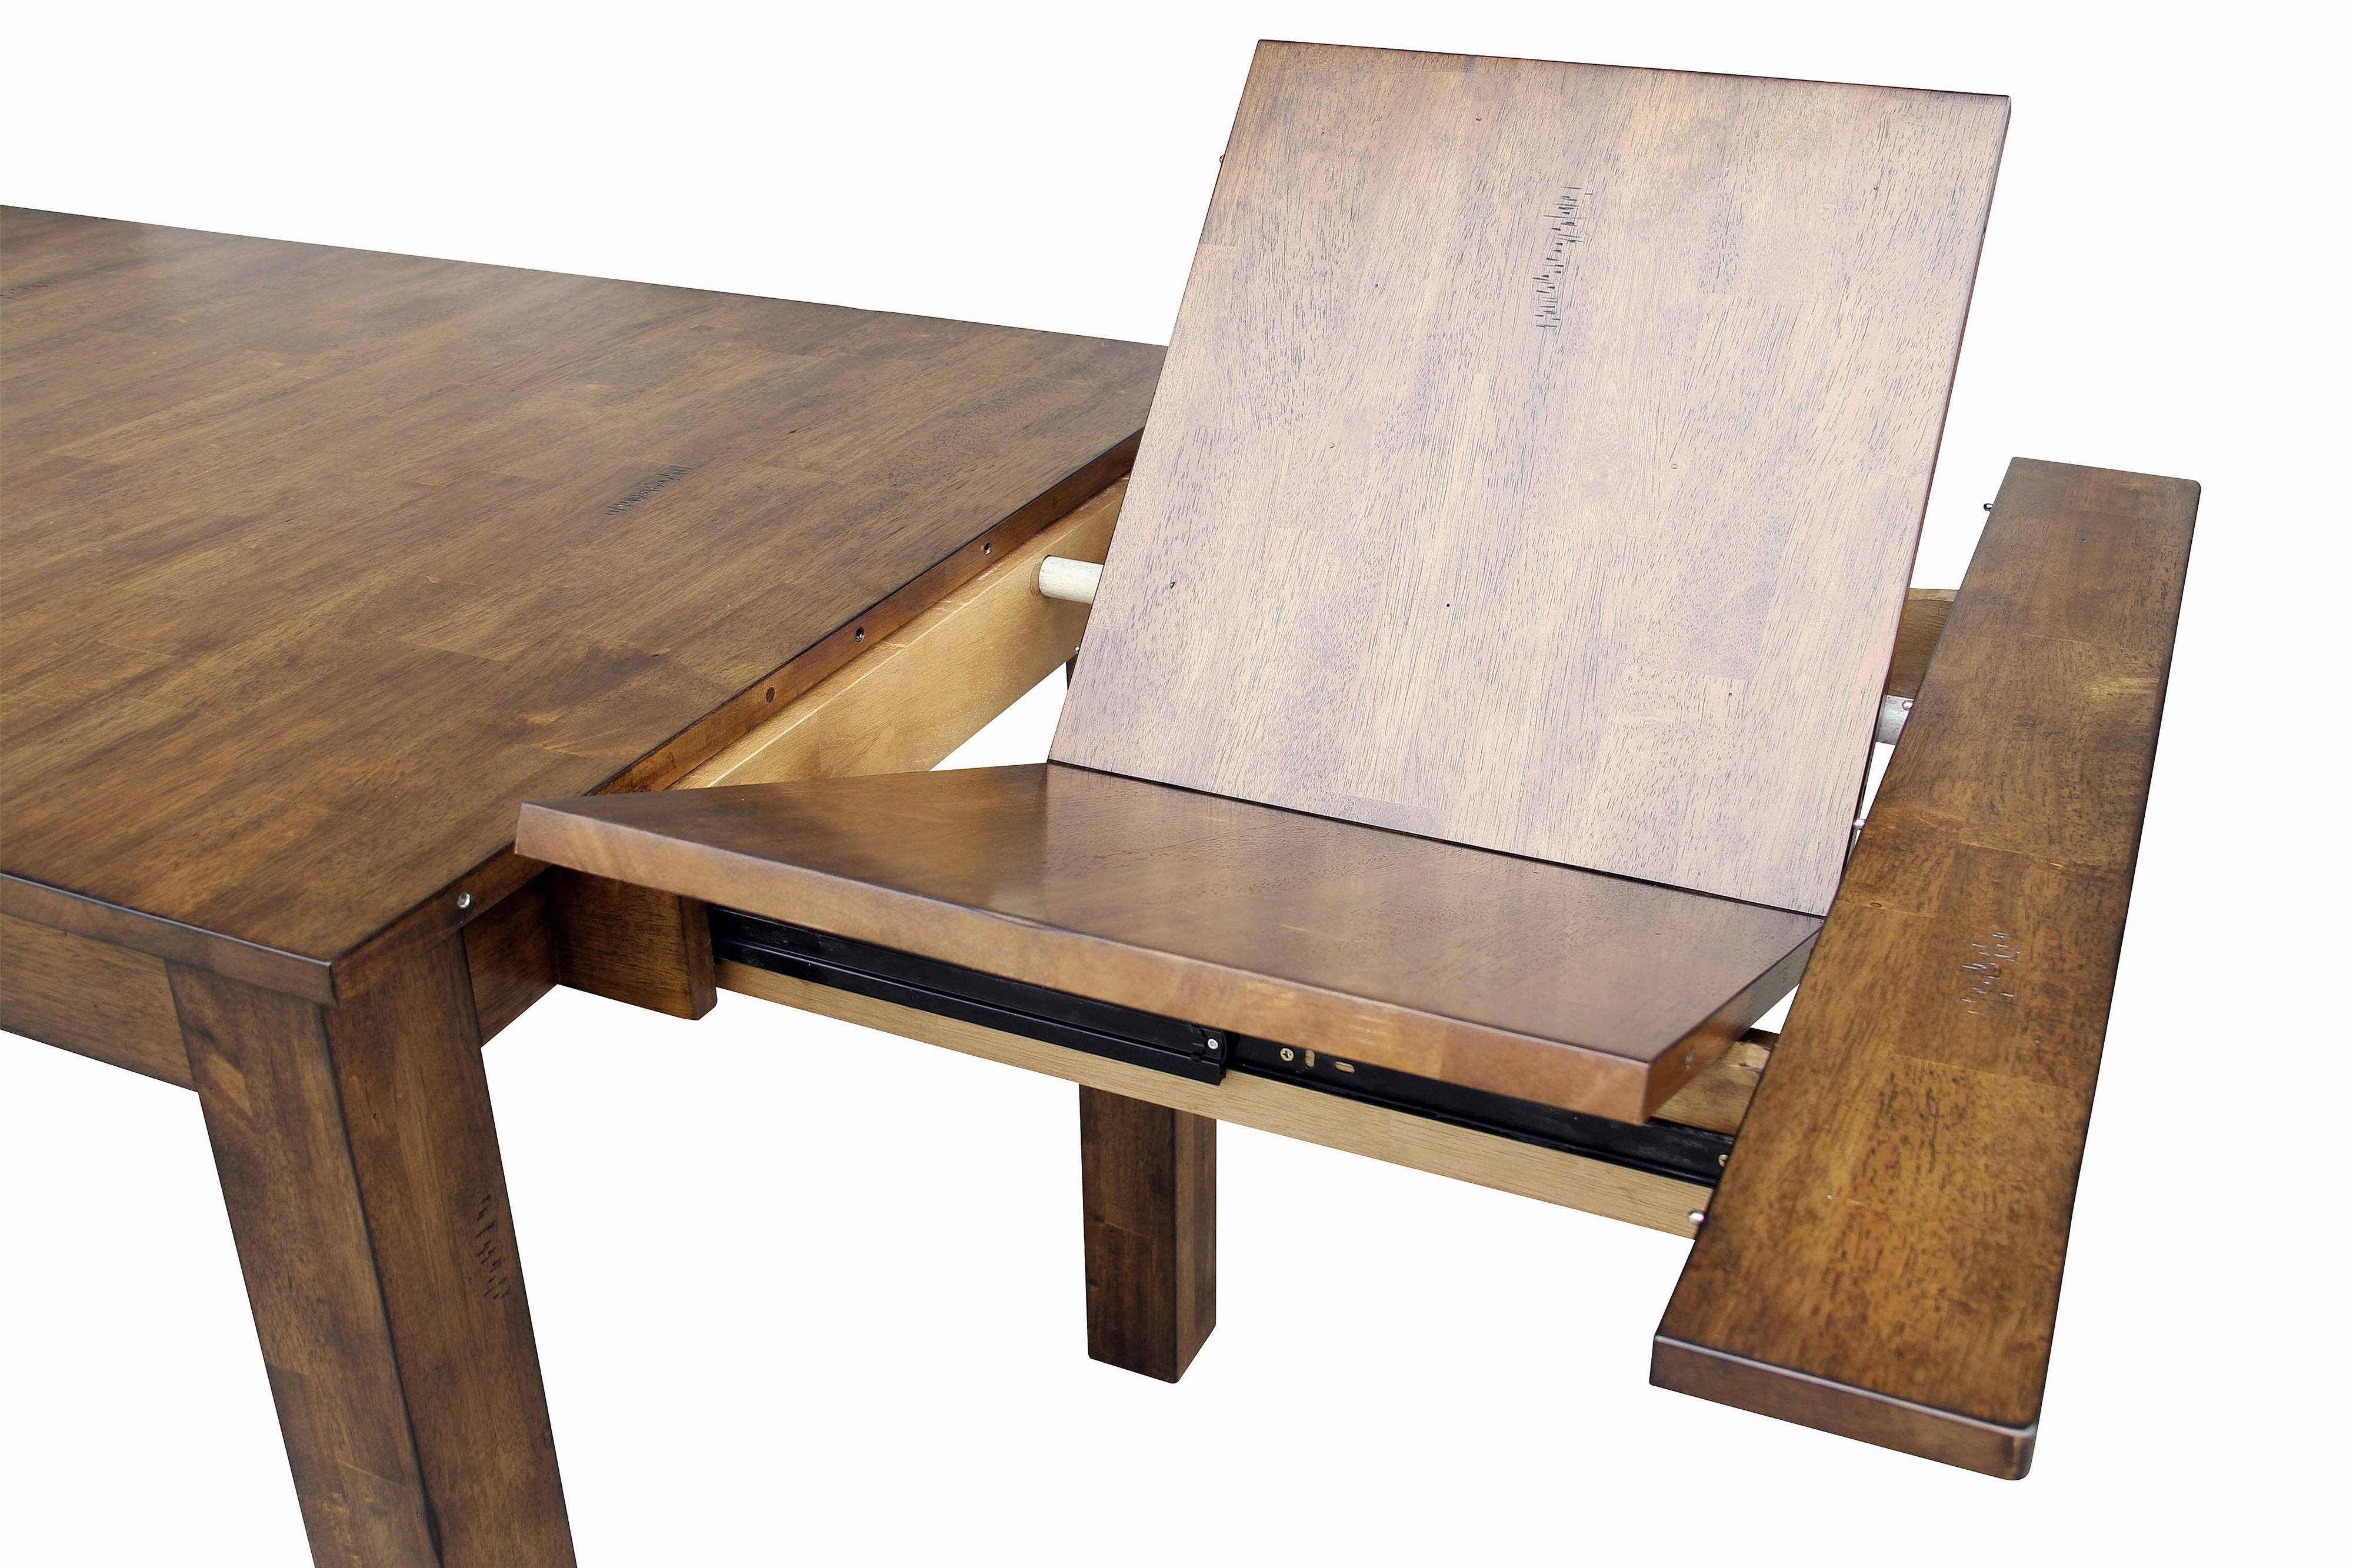 5 Piece Dining Table and Slatback Chairs Set by AAmerica